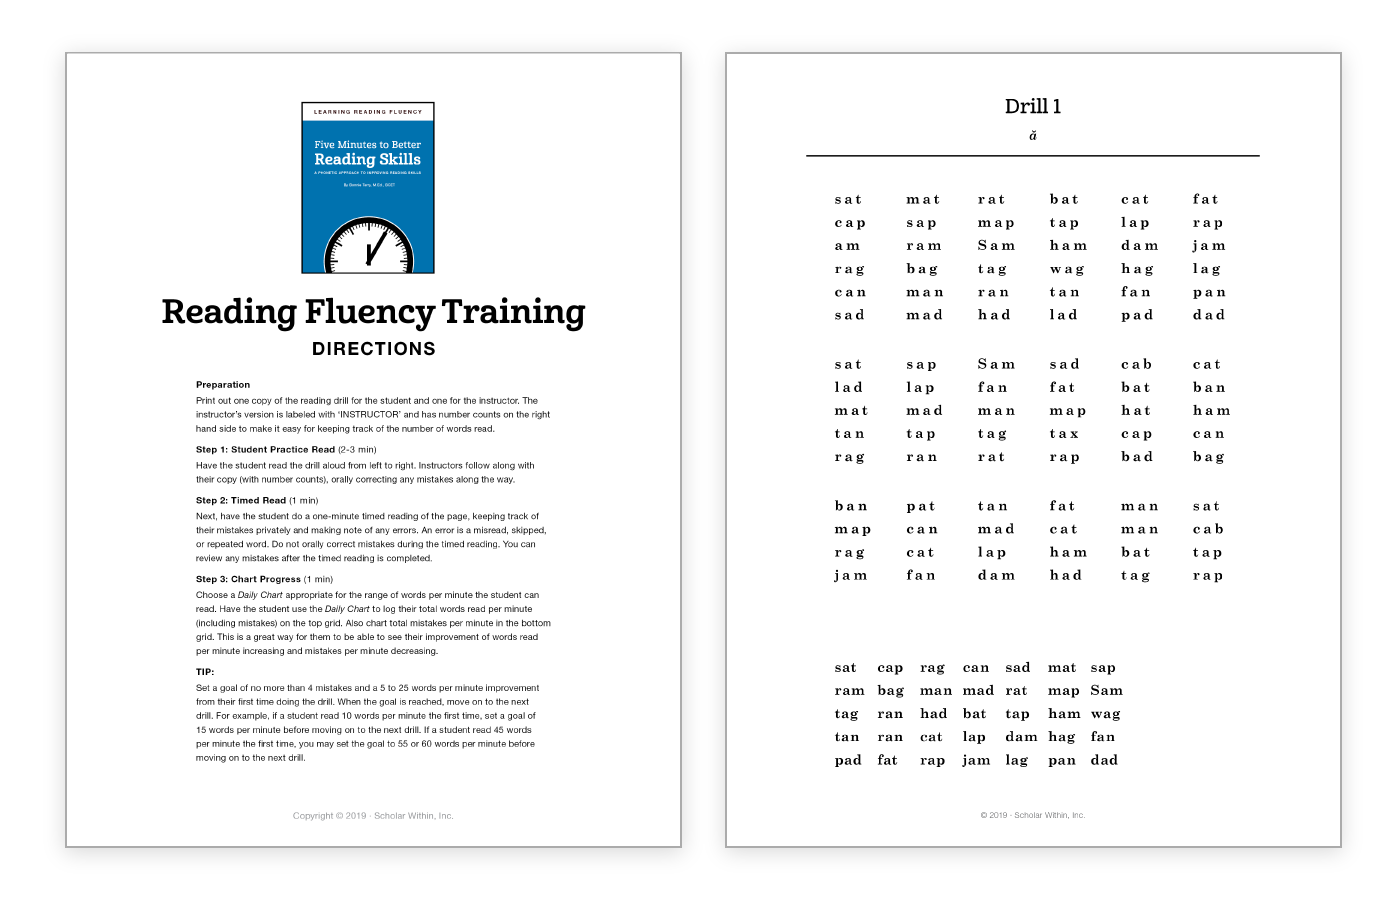 Reading Fluency Training Drill